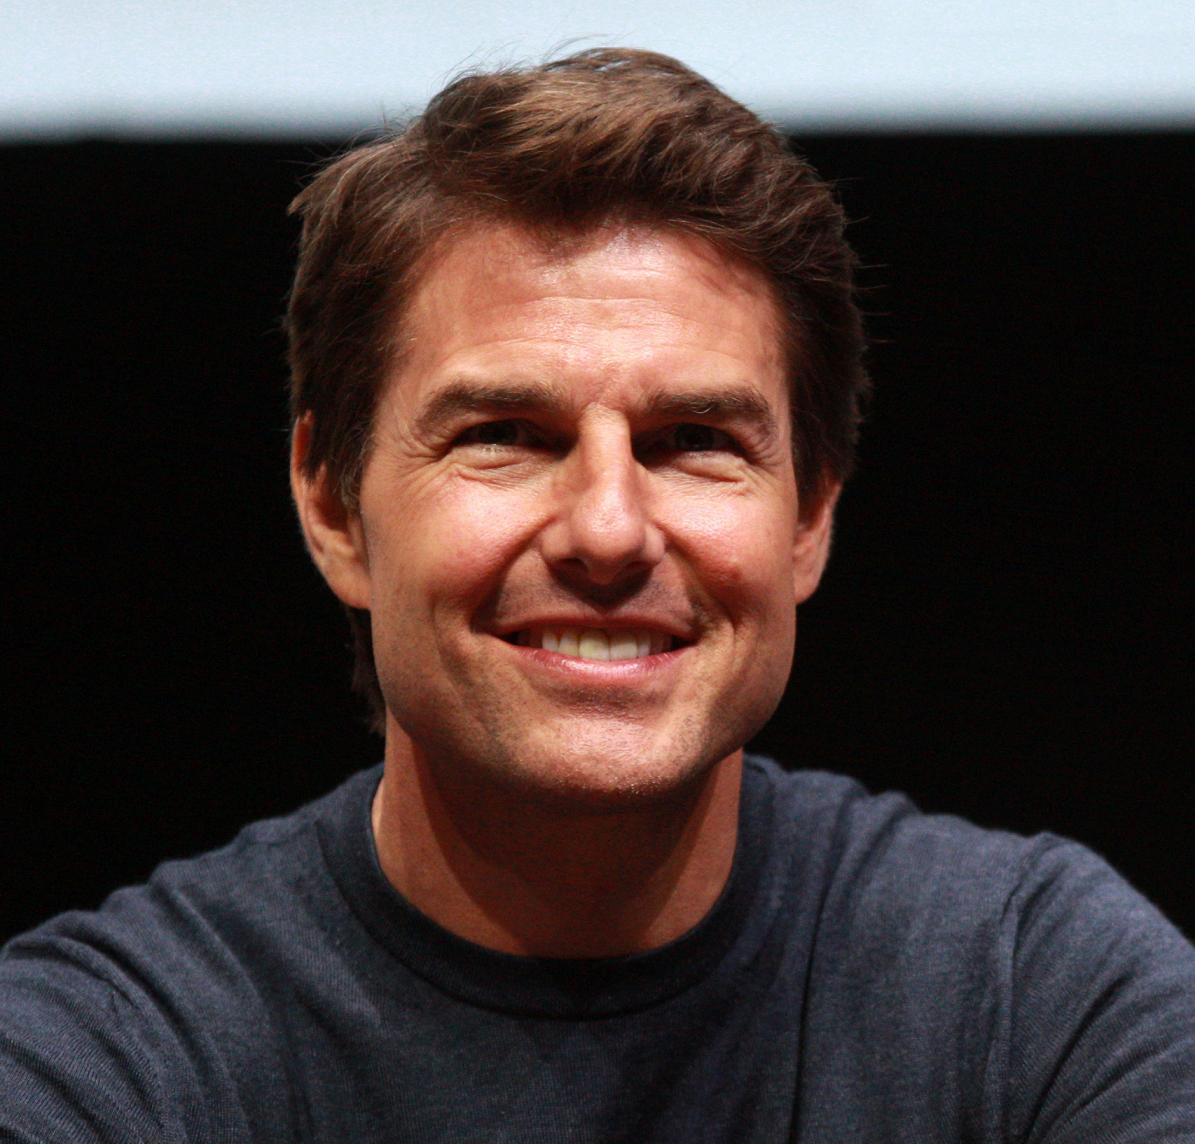 Tom Cruise Bio, Net Worth, Facts